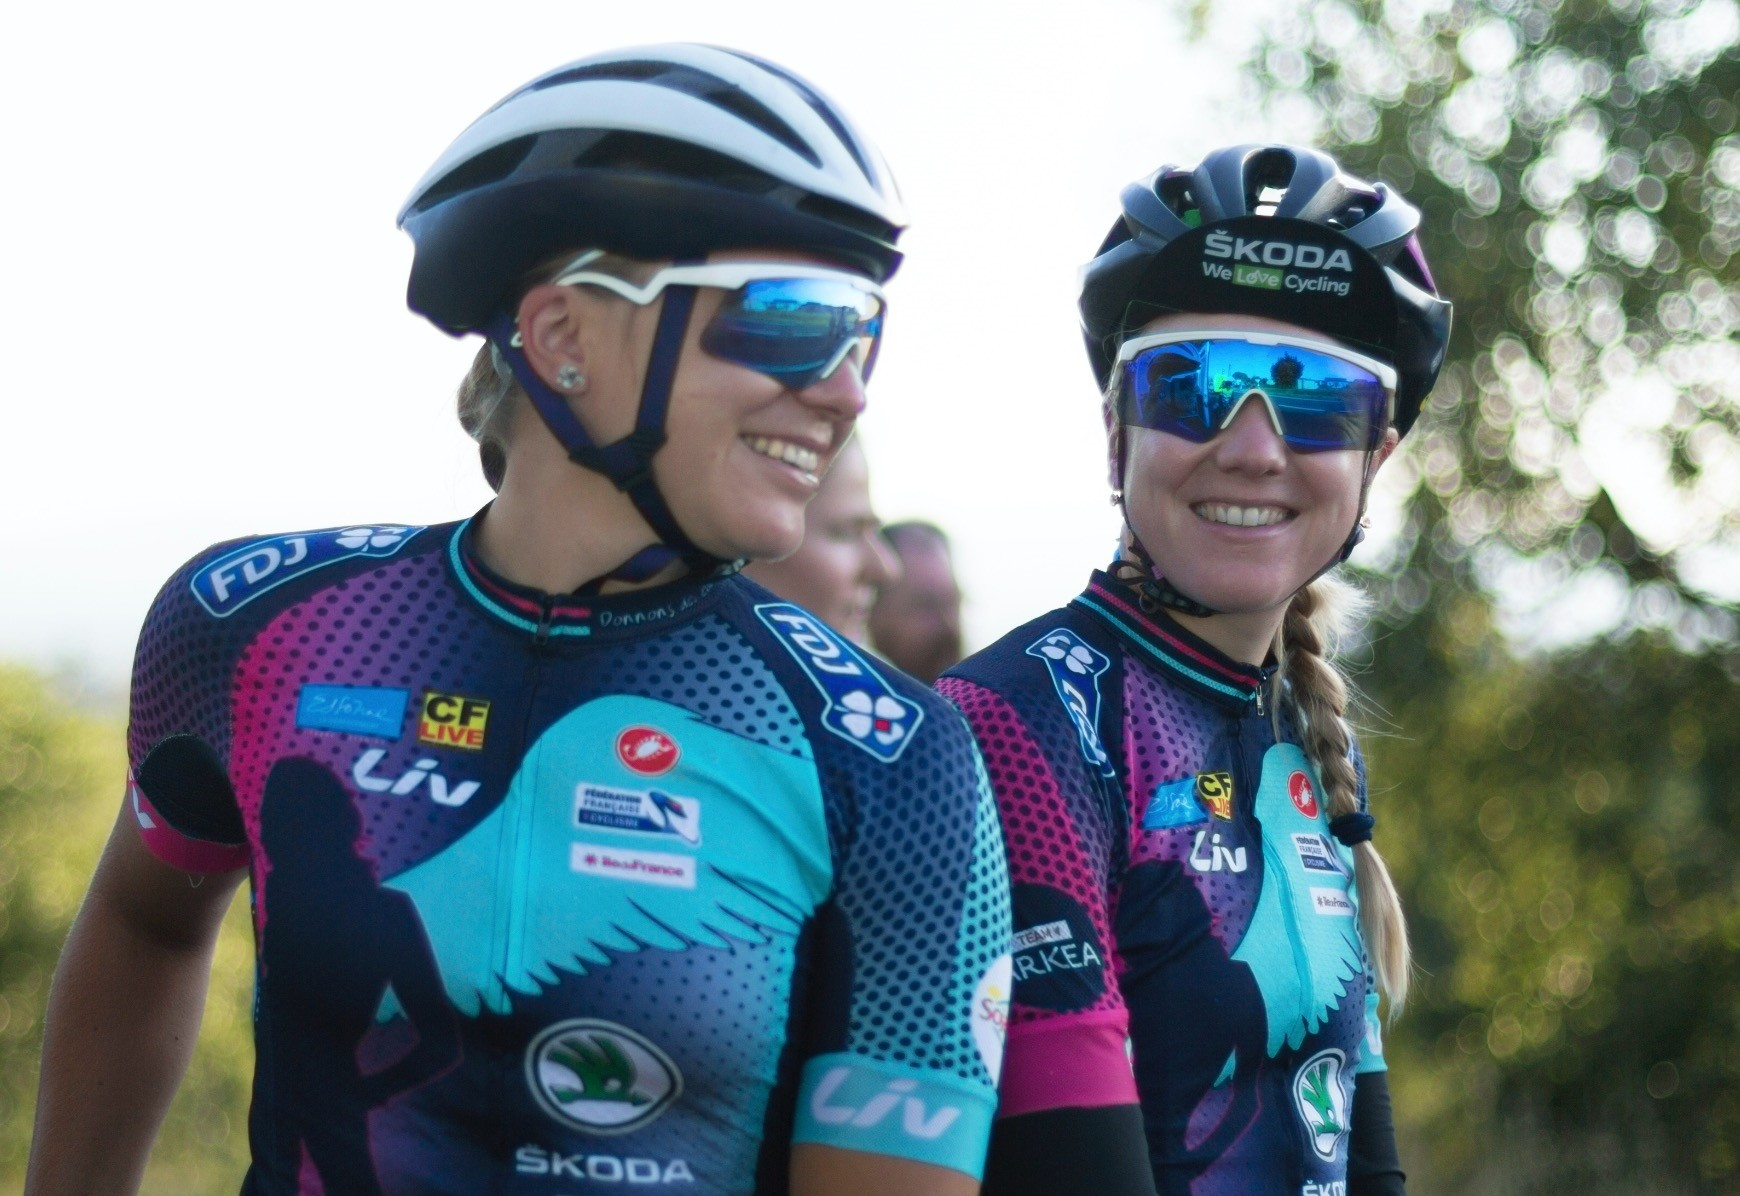 Tetiana Kalachova (L) and Christine Michelet (R), members of the female team of amateur cyclists completing the Tour de France route to raise awareness for womenu2019s cycling and promote the return of the womenu2019s Tour, in Carcassonne, France, July 23